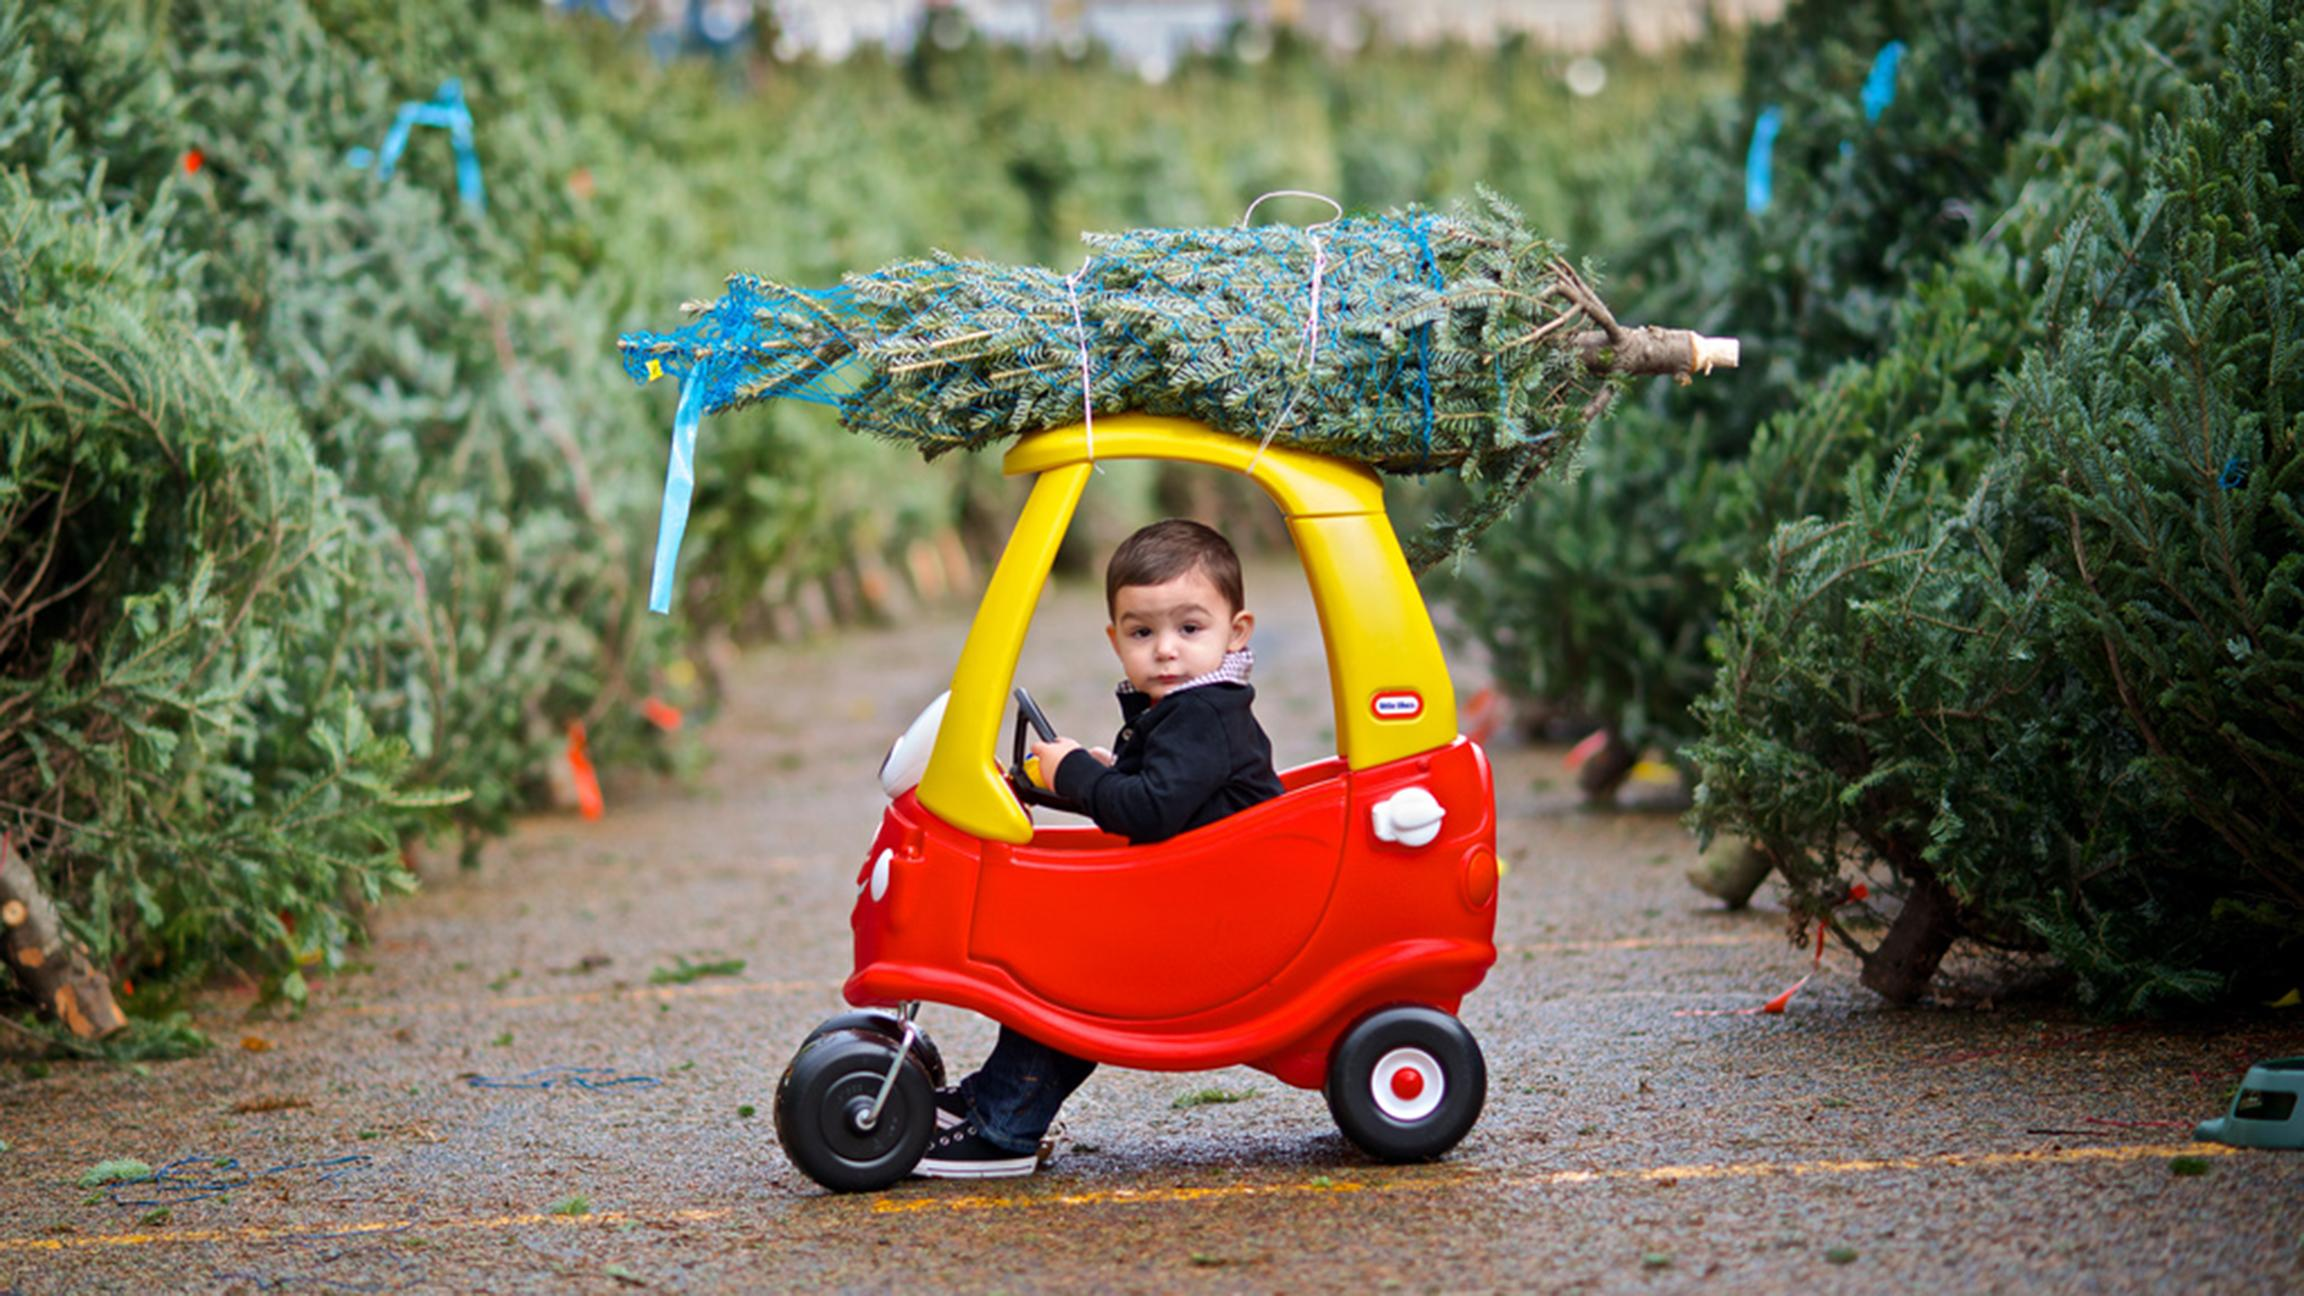 Road trip: Browse trees by the dozen at a Christmas tree farm in DeKalb. (FrankGuido / Flickr)